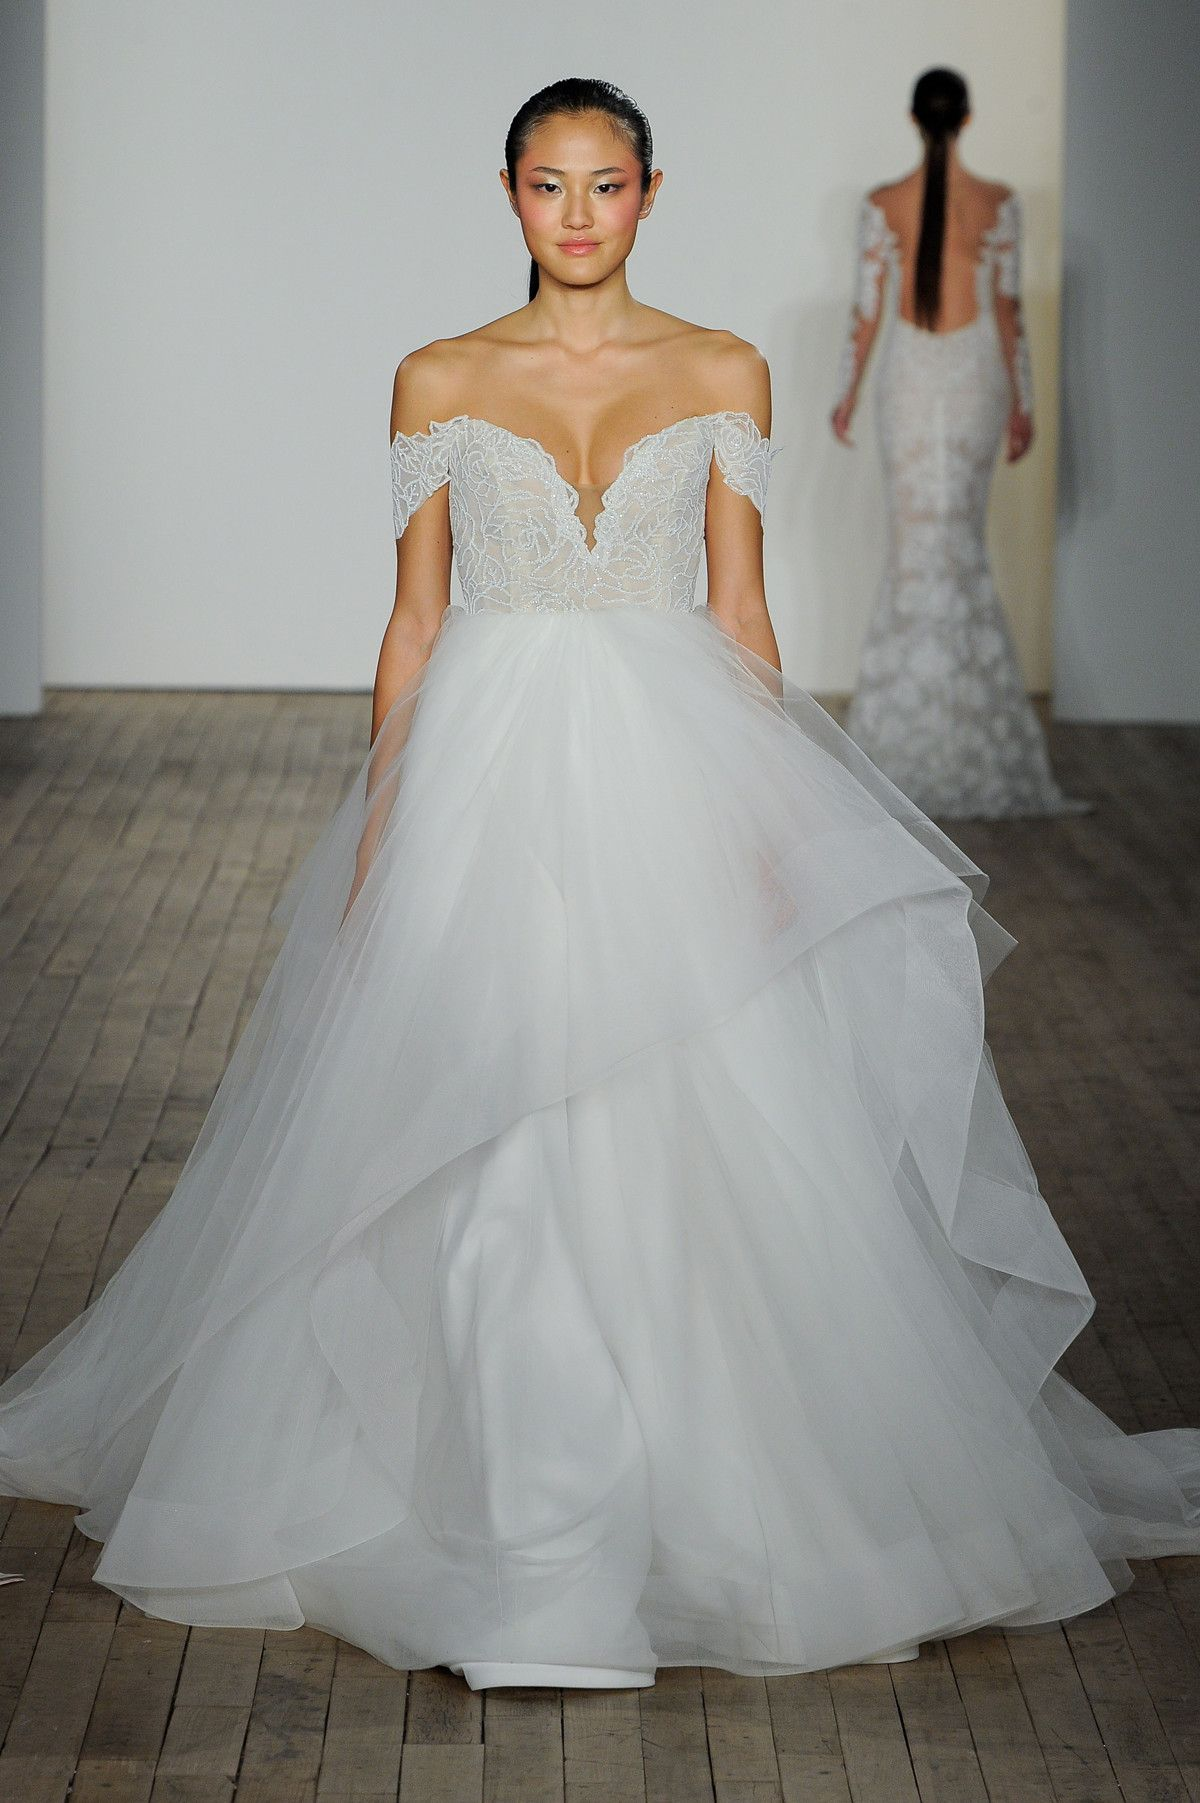 Best wedding dresses for short waisted  Blush by Hayley Paige Fall  Wedding Dress Collection  wedding